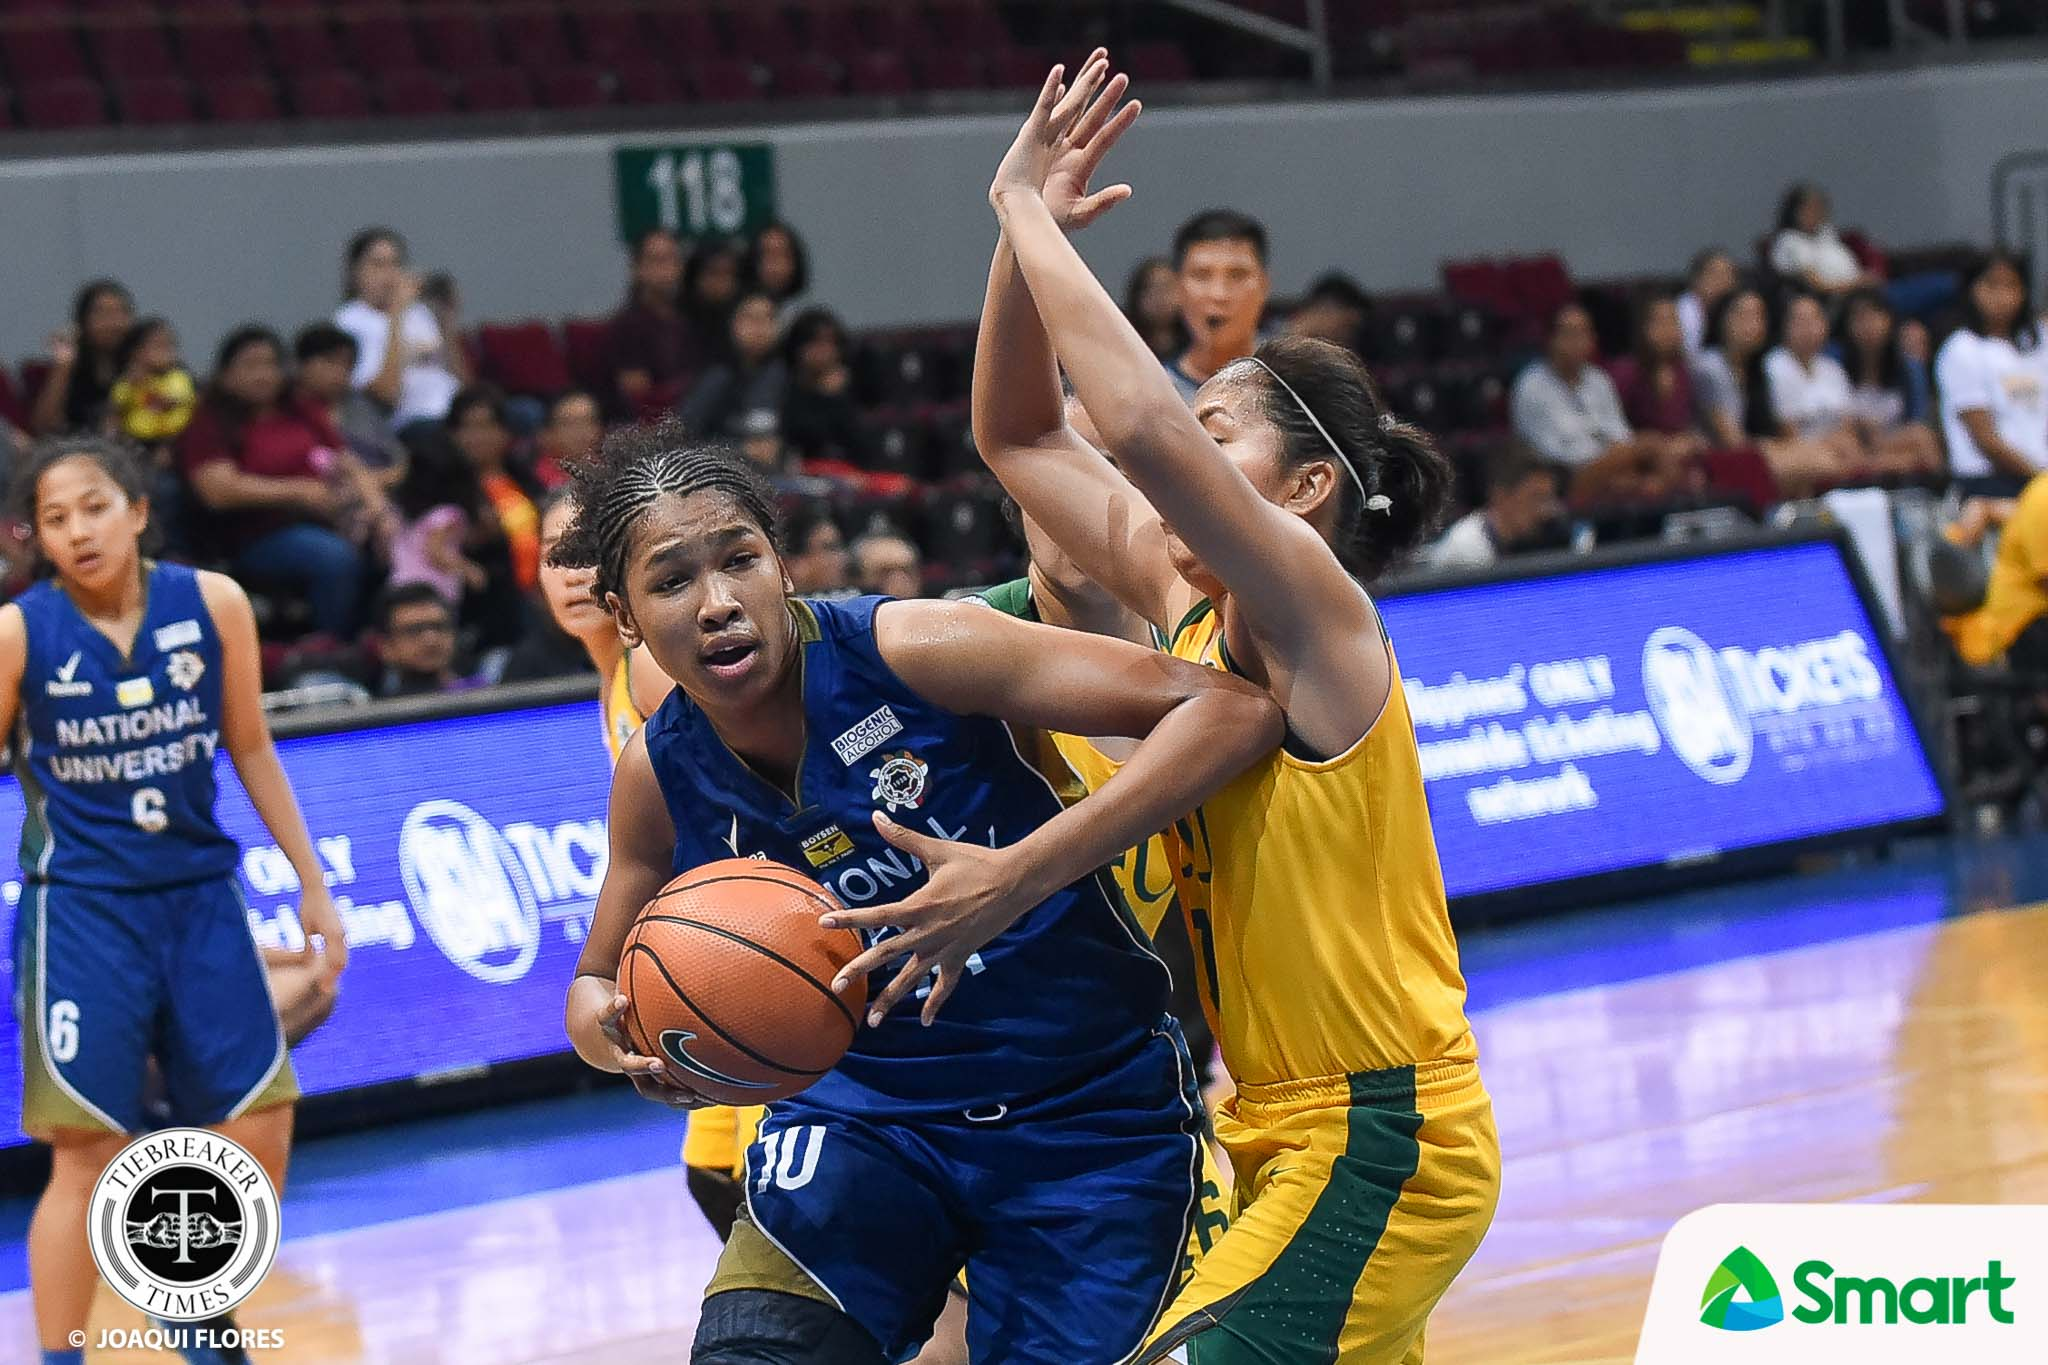 Tiebreaker Times Jack Animam, Rhena Itesi lock down Clare Castro as NU two away from tying record Basketball News NU UAAP UP  Valerie Mamaril UAAP Season 81 Women's Basketball UAAP Season 81 Ria Nabalan Patrick Aquino NU Women's Basketball Kaye Pingol Jack Animam FEU Women's Basketball fatima quiapo Bert Flores